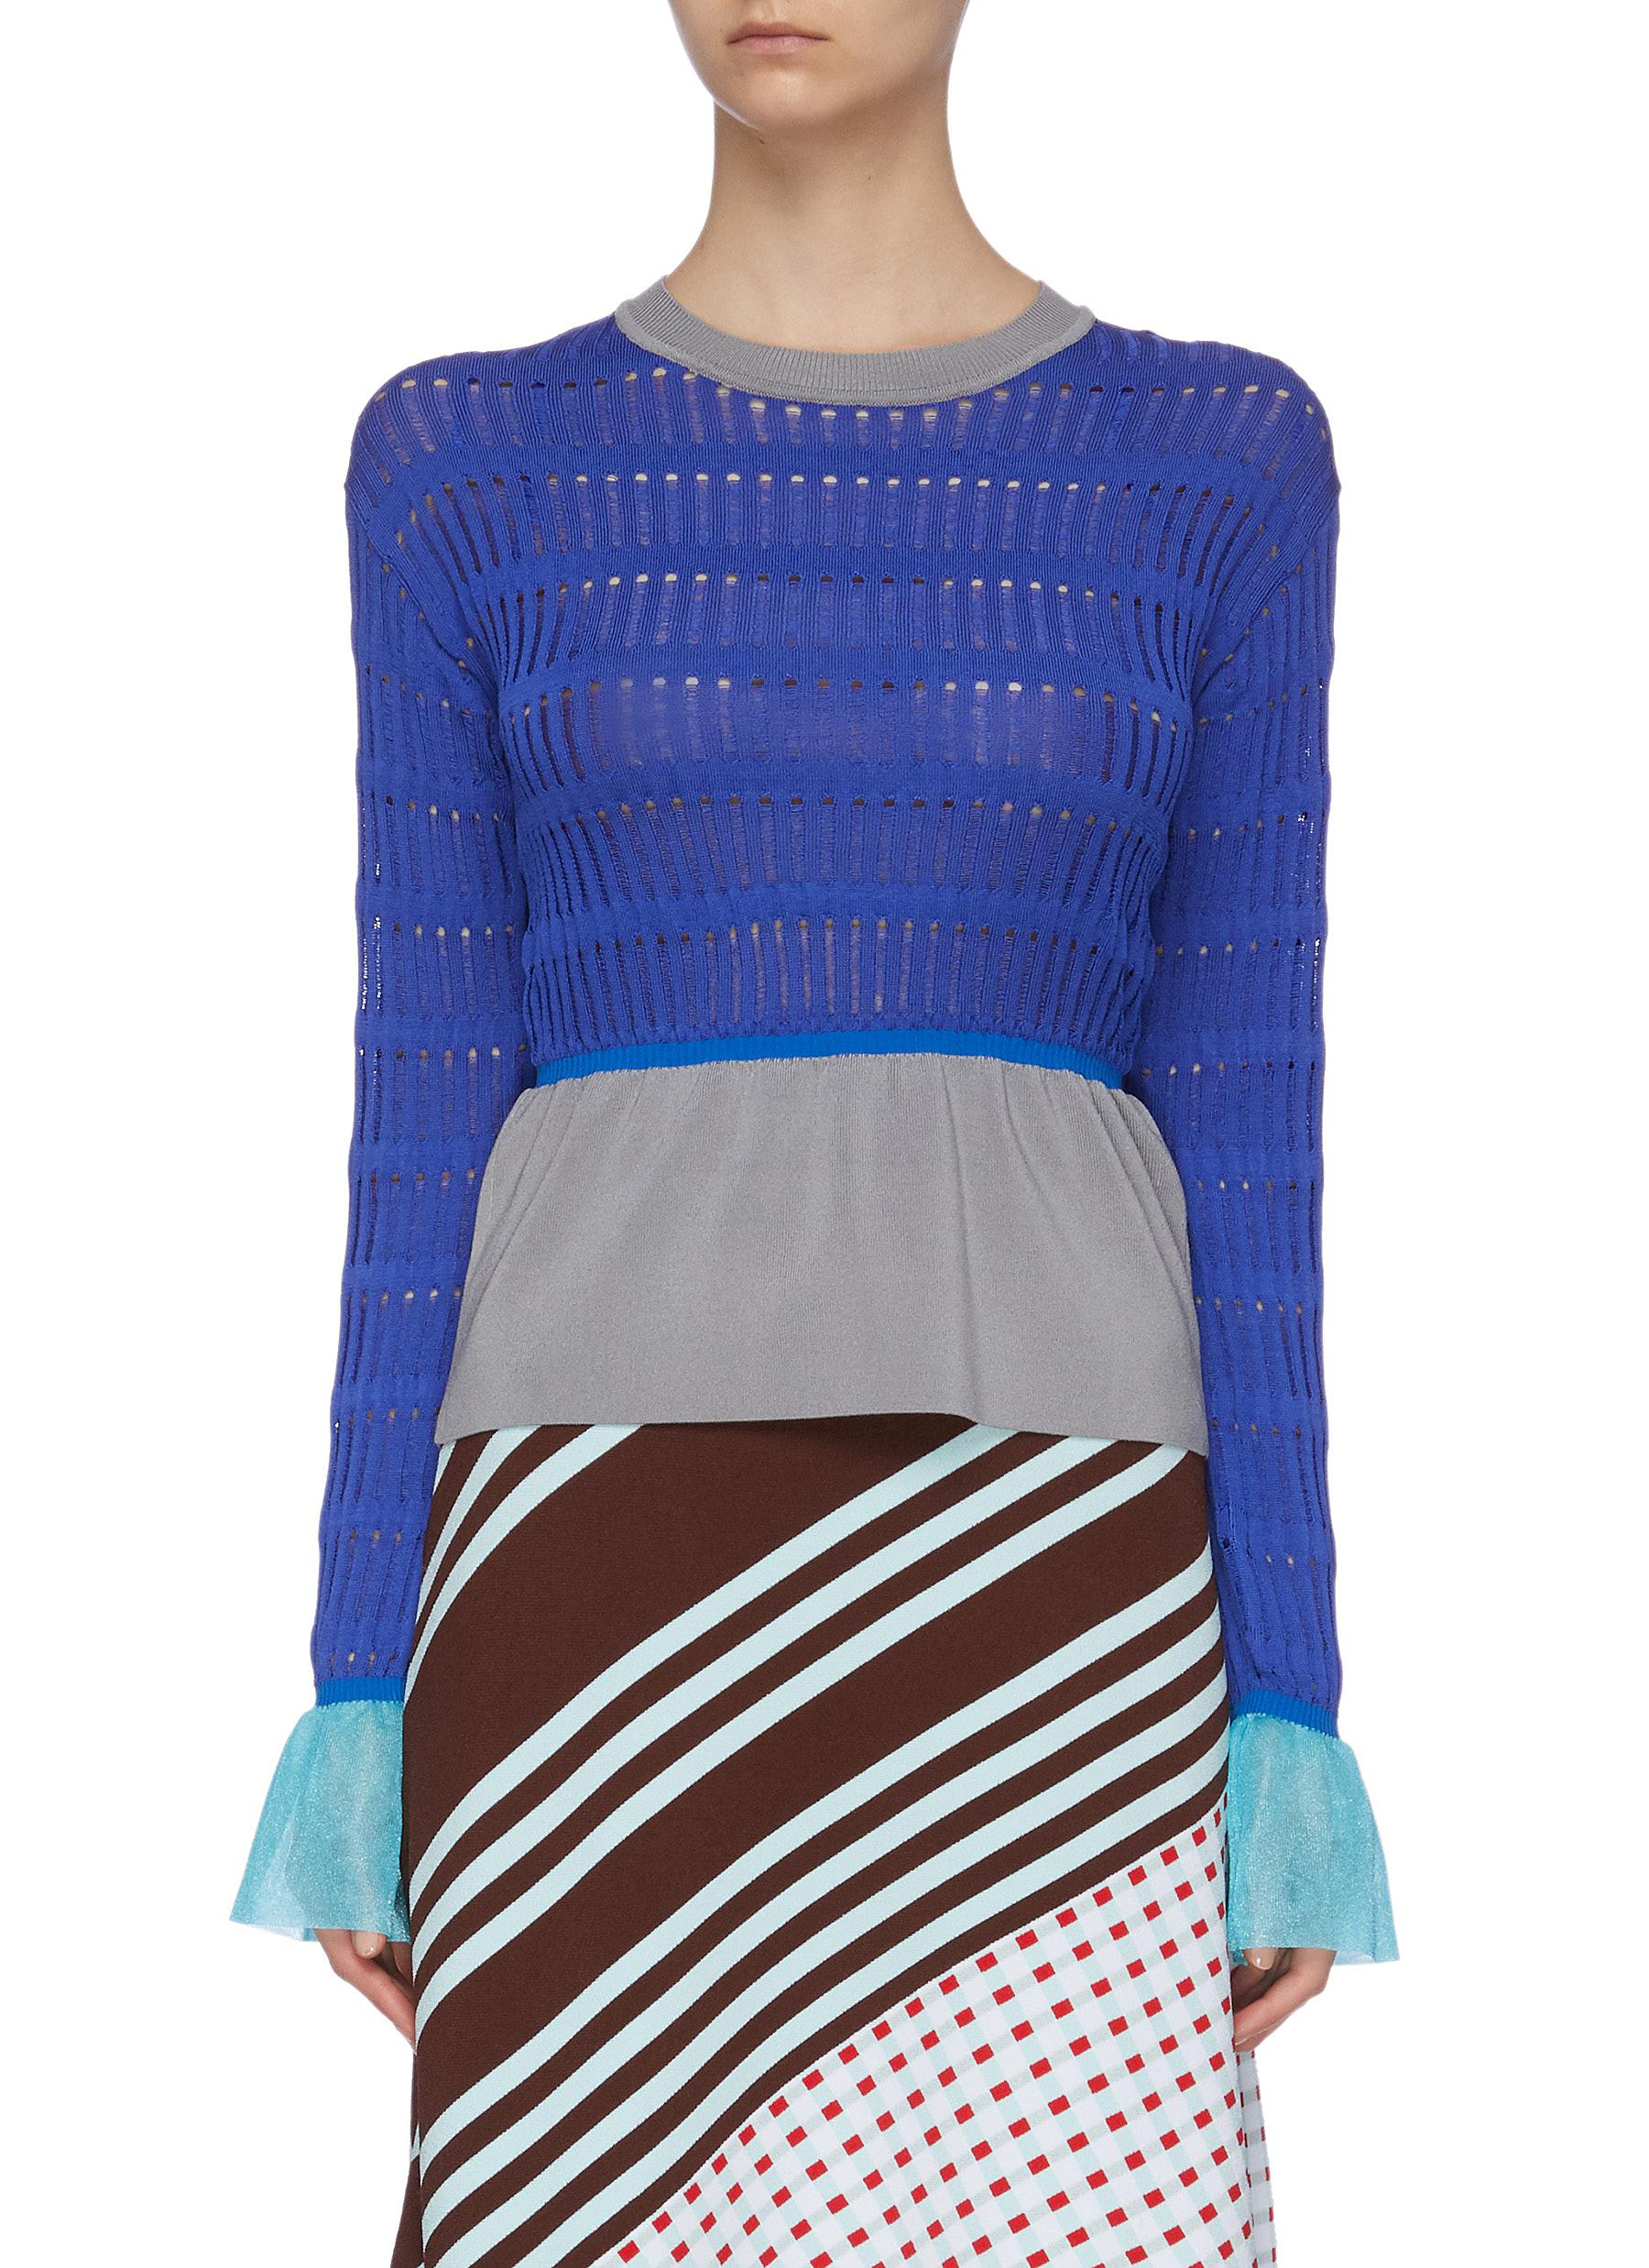 Buy I-Am-Chen Tops Contrast waist cuff panel cut out knit top